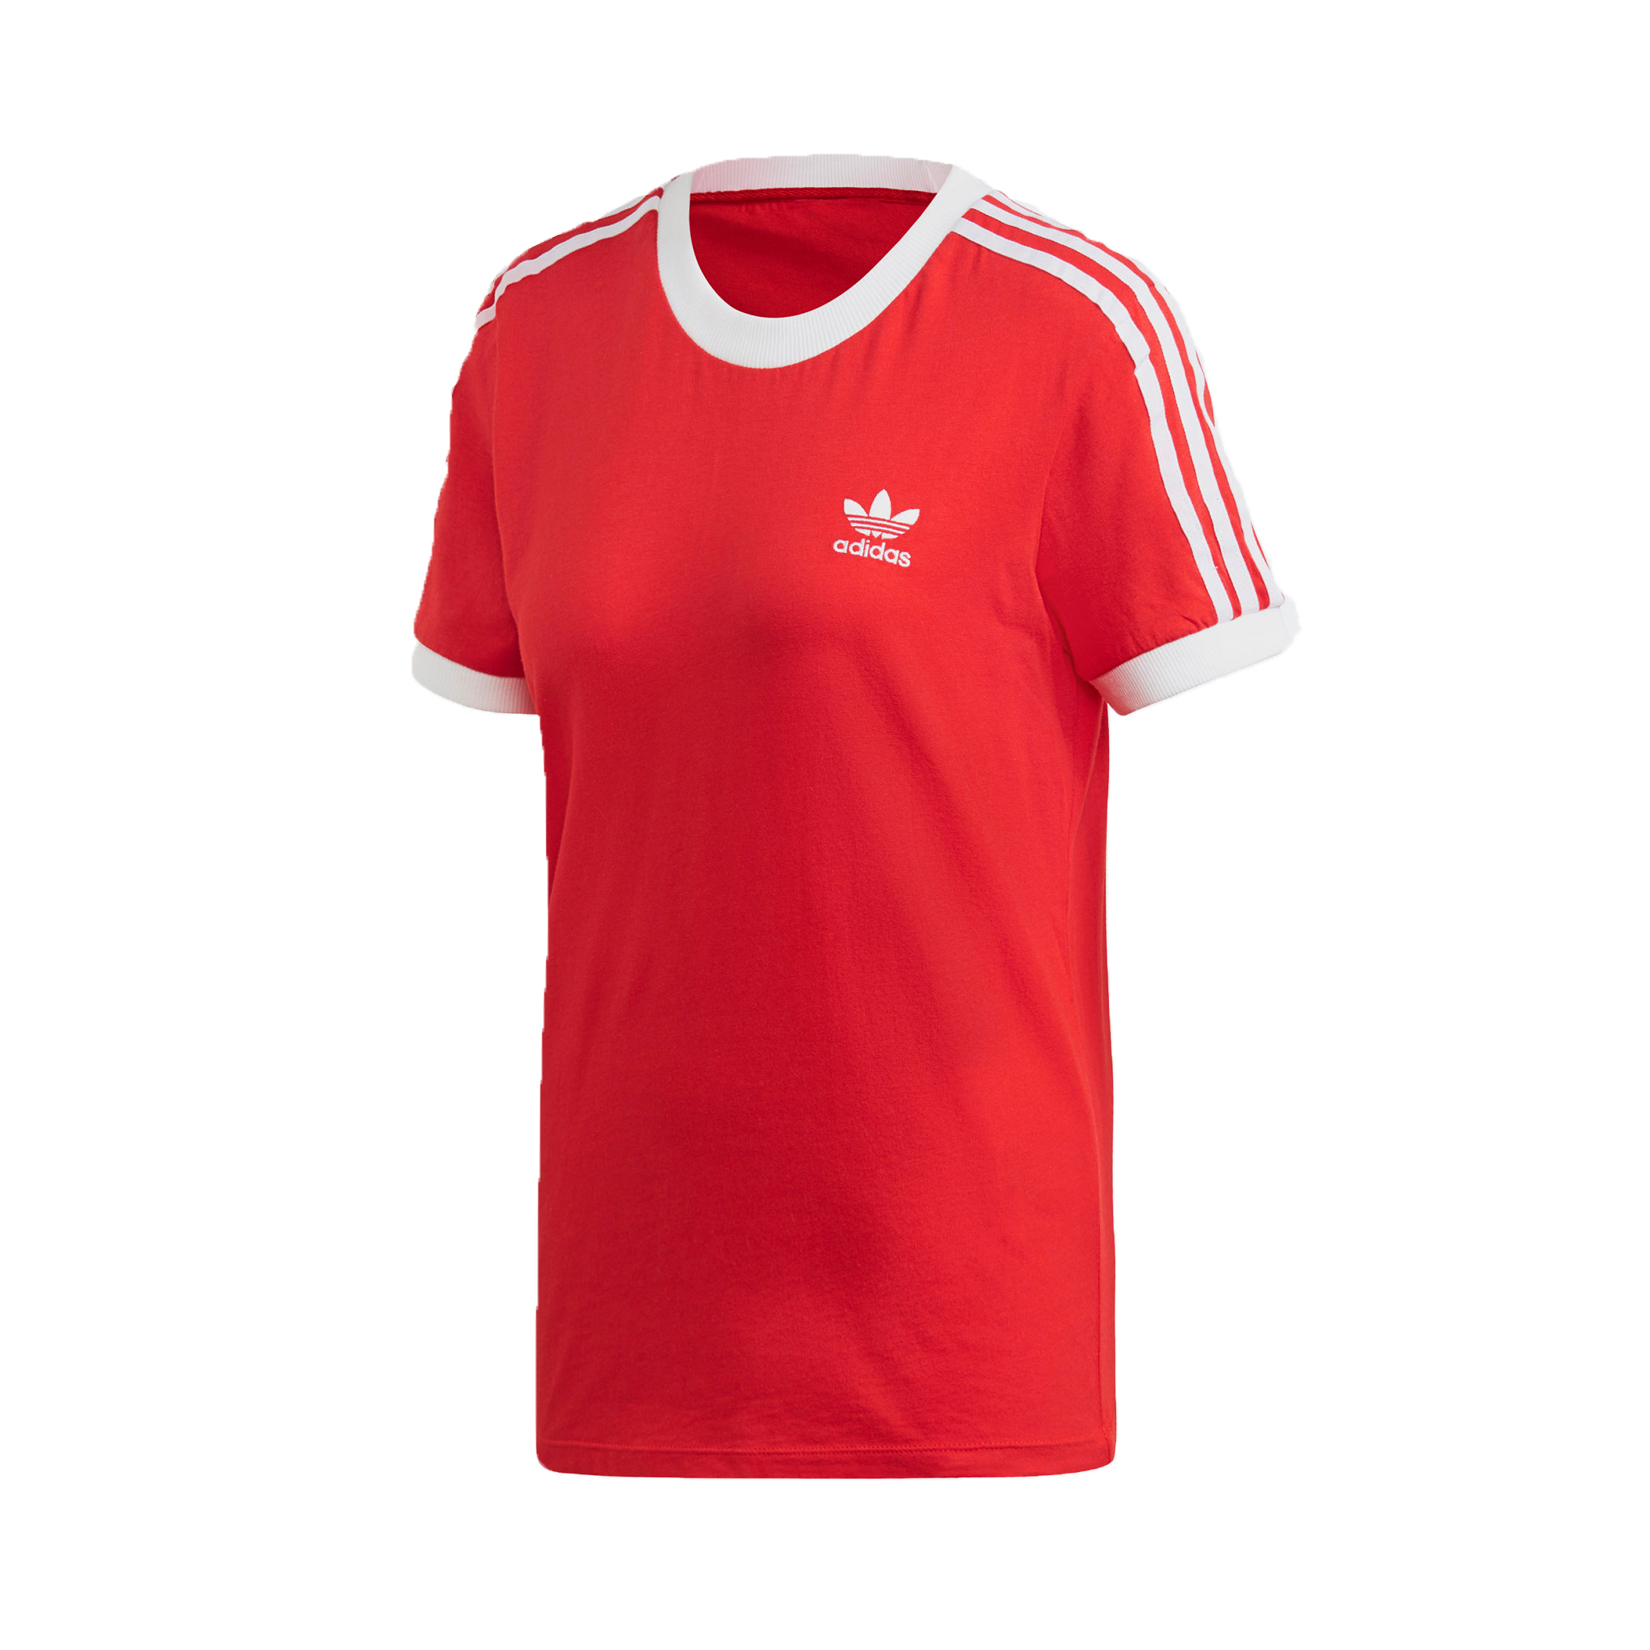 Adidas Originals 3-Stripes W Tee T-Shirt Red